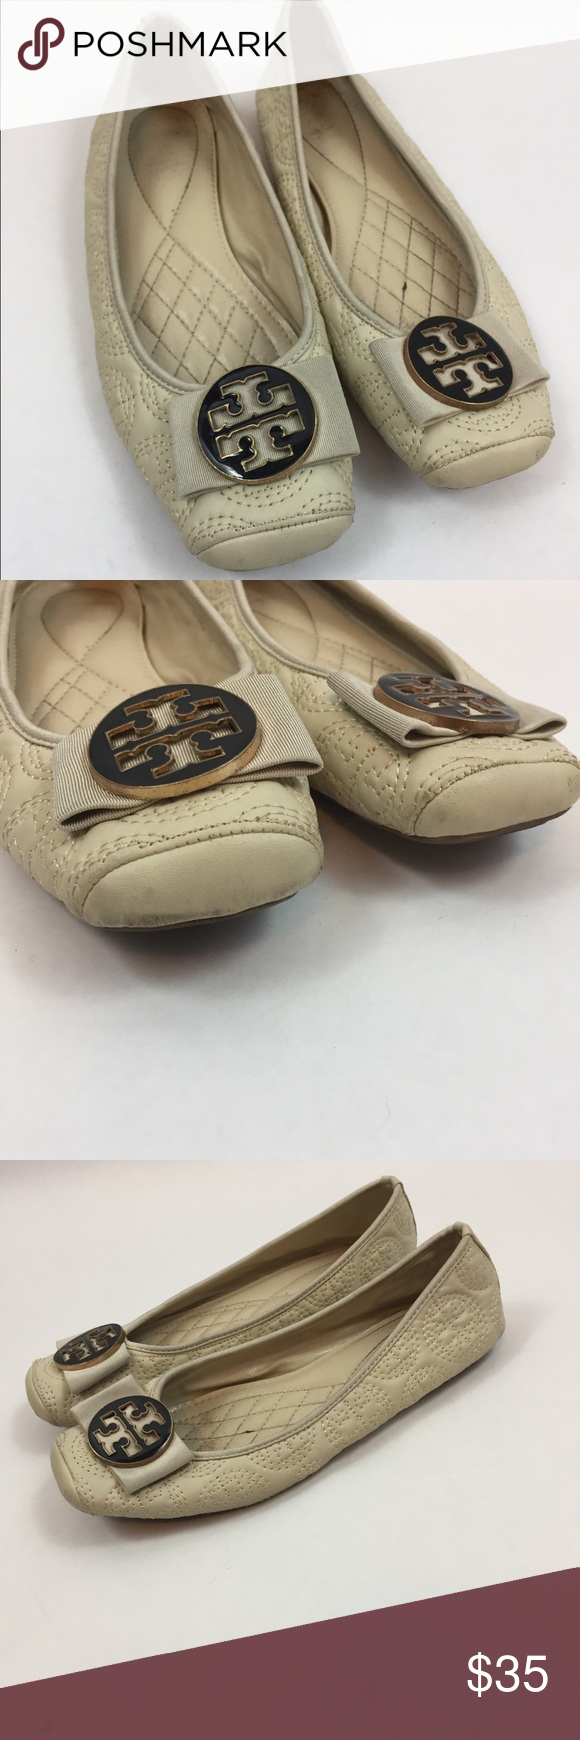 ced53d76d83f Tory Burch Flats Color  light cream Size  41 (10 women s) Good used  condition Tory Burch Shoes Flats   Loafers